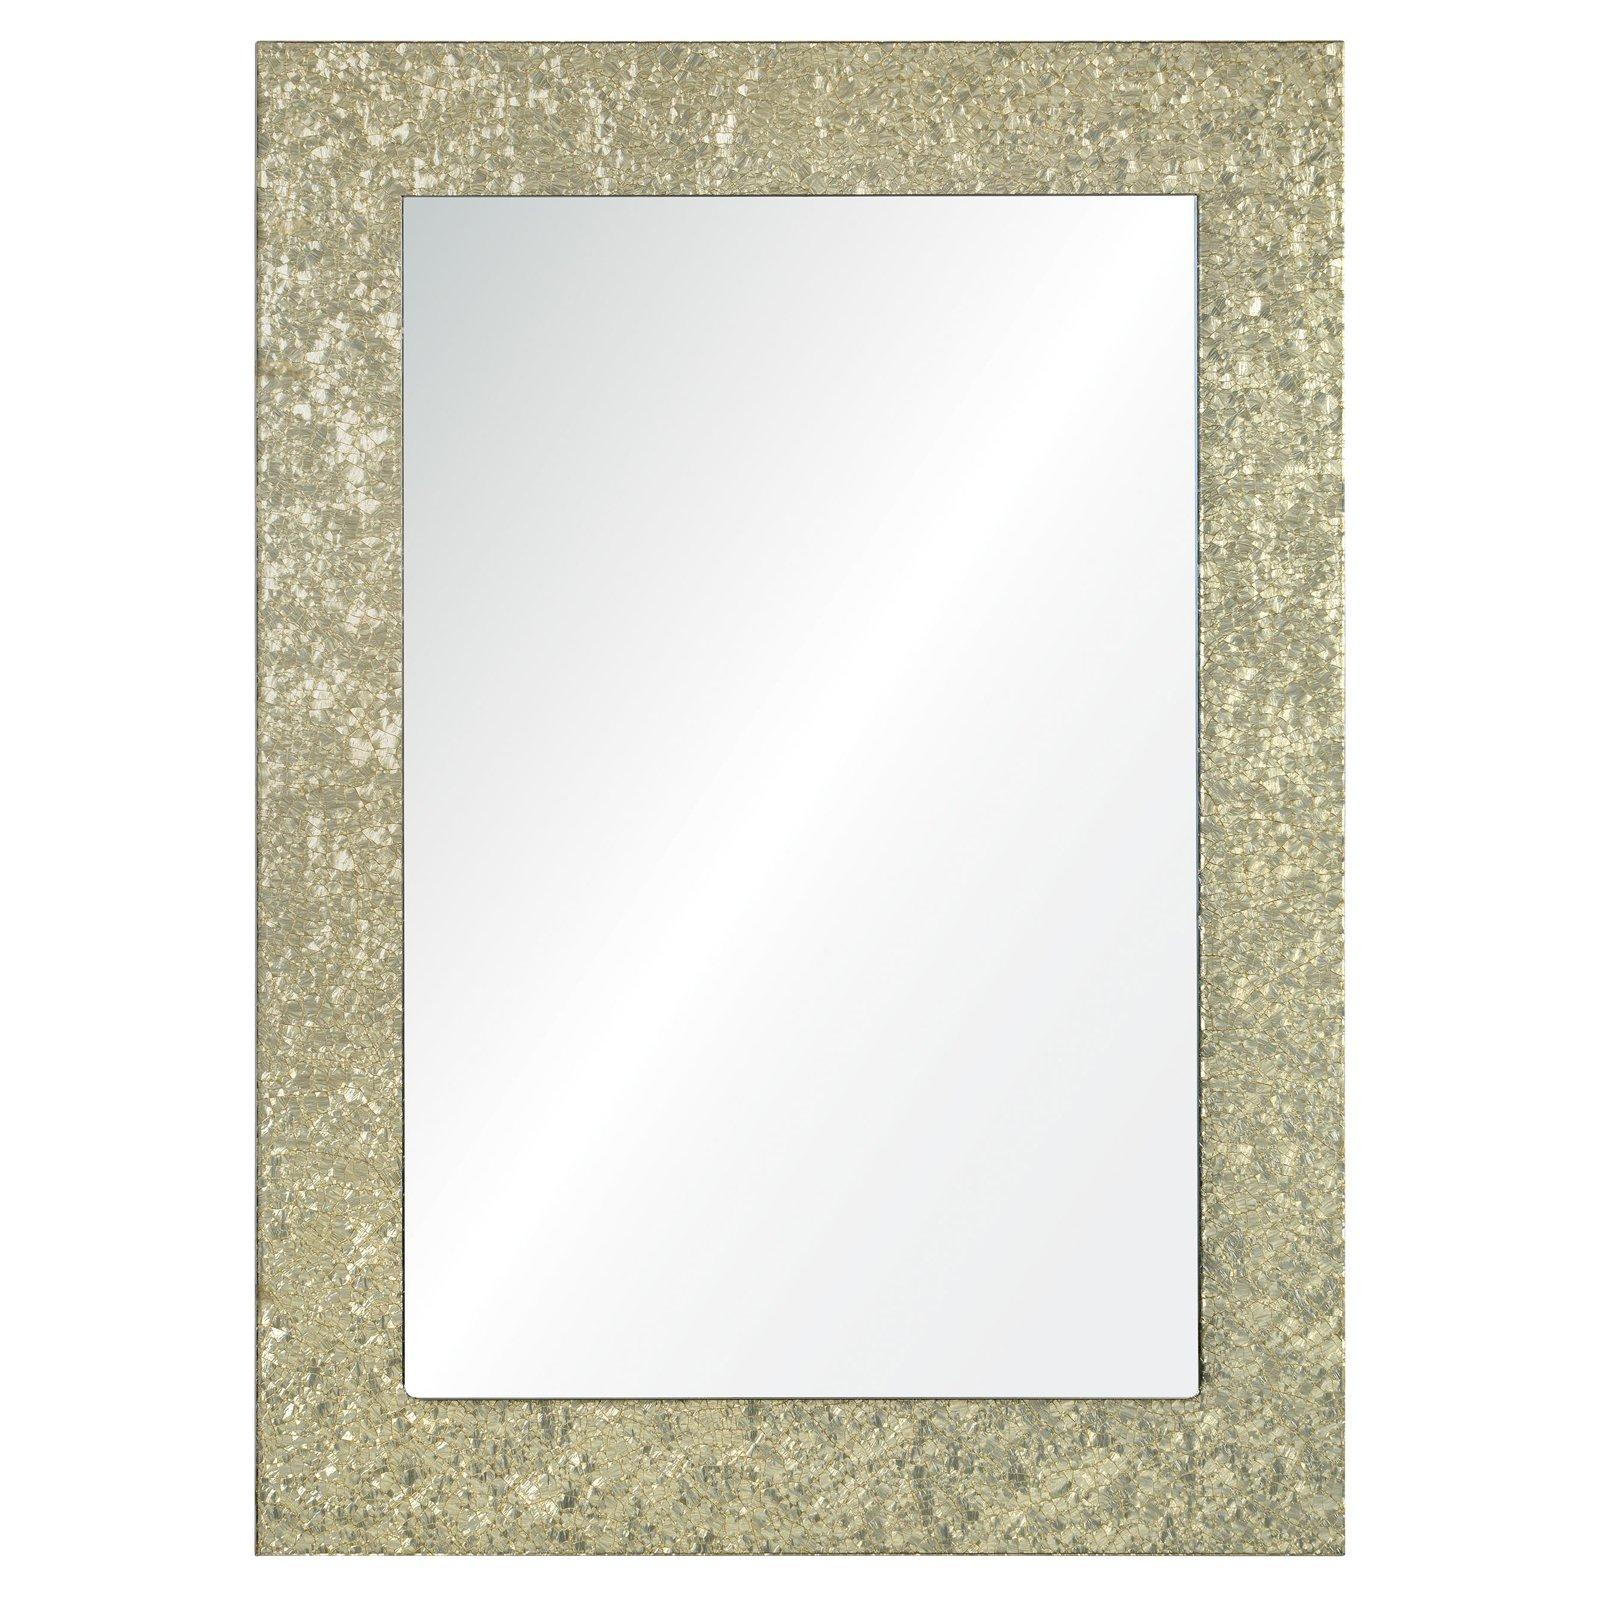 Ren Wil Marion Wall Mirror – 24W X 32H In. Within Marion Wall Mirrors (Gallery 5 of 30)